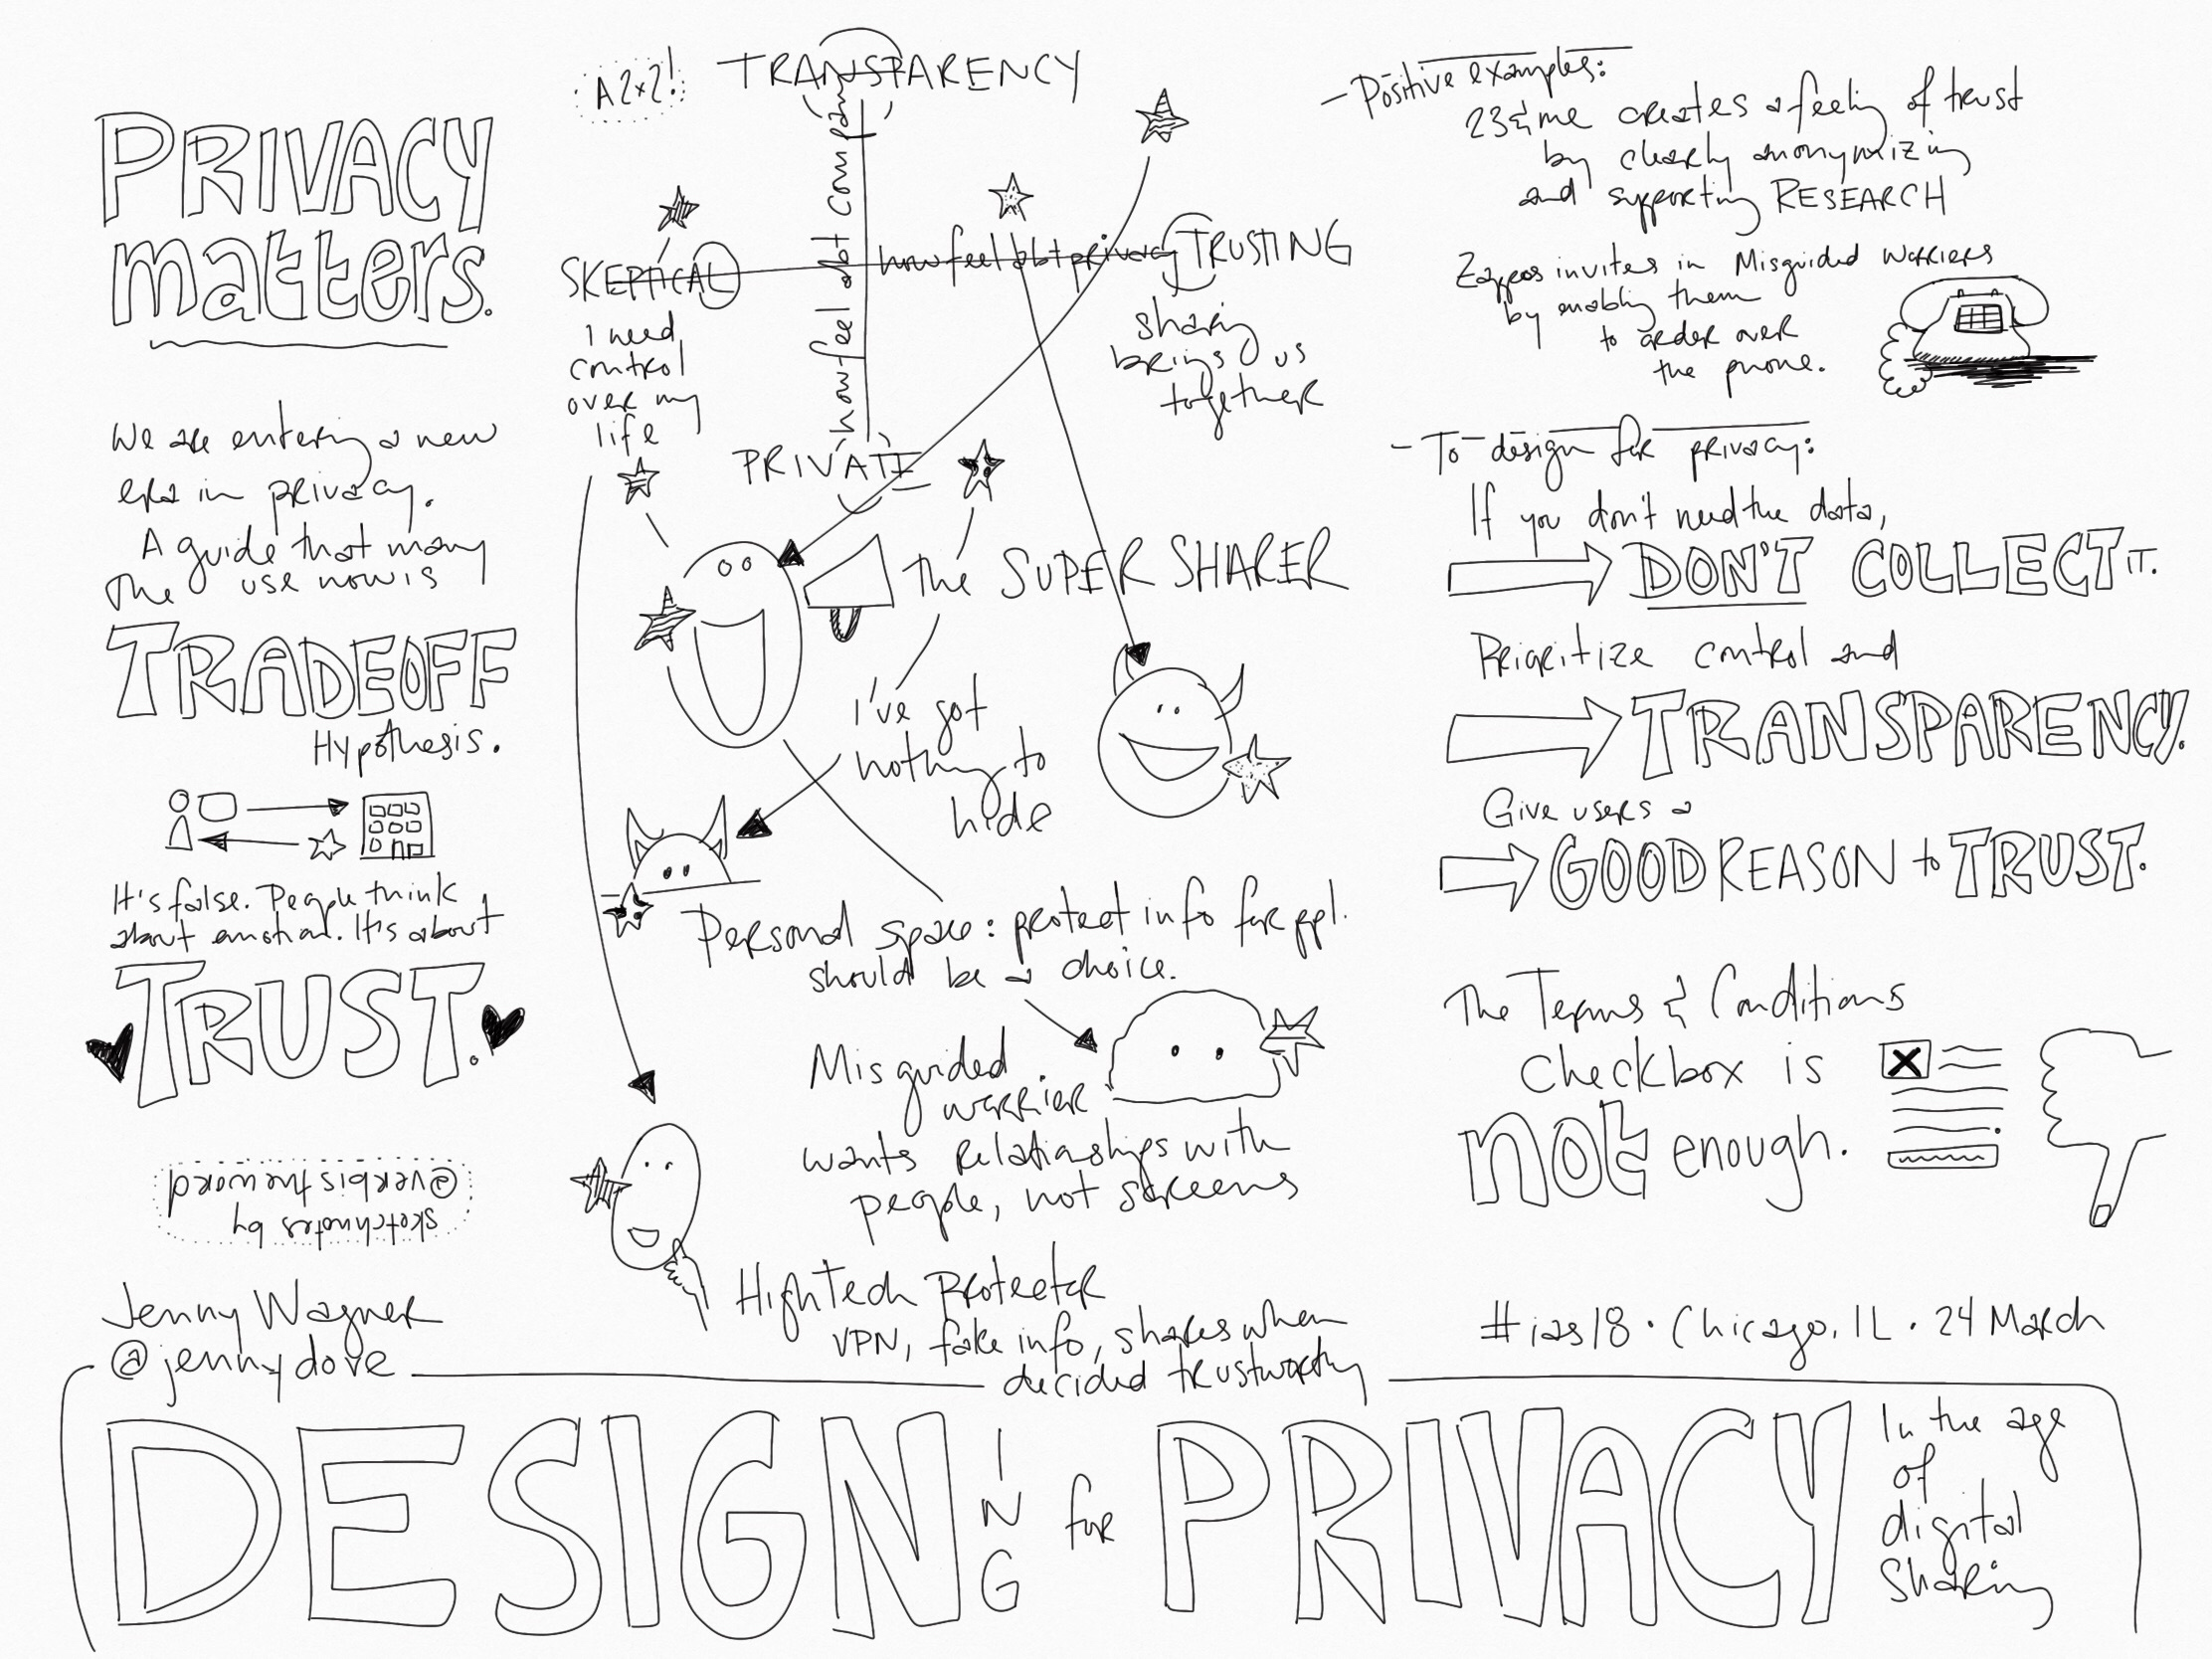 Sketchnote summarizing the privacy personas